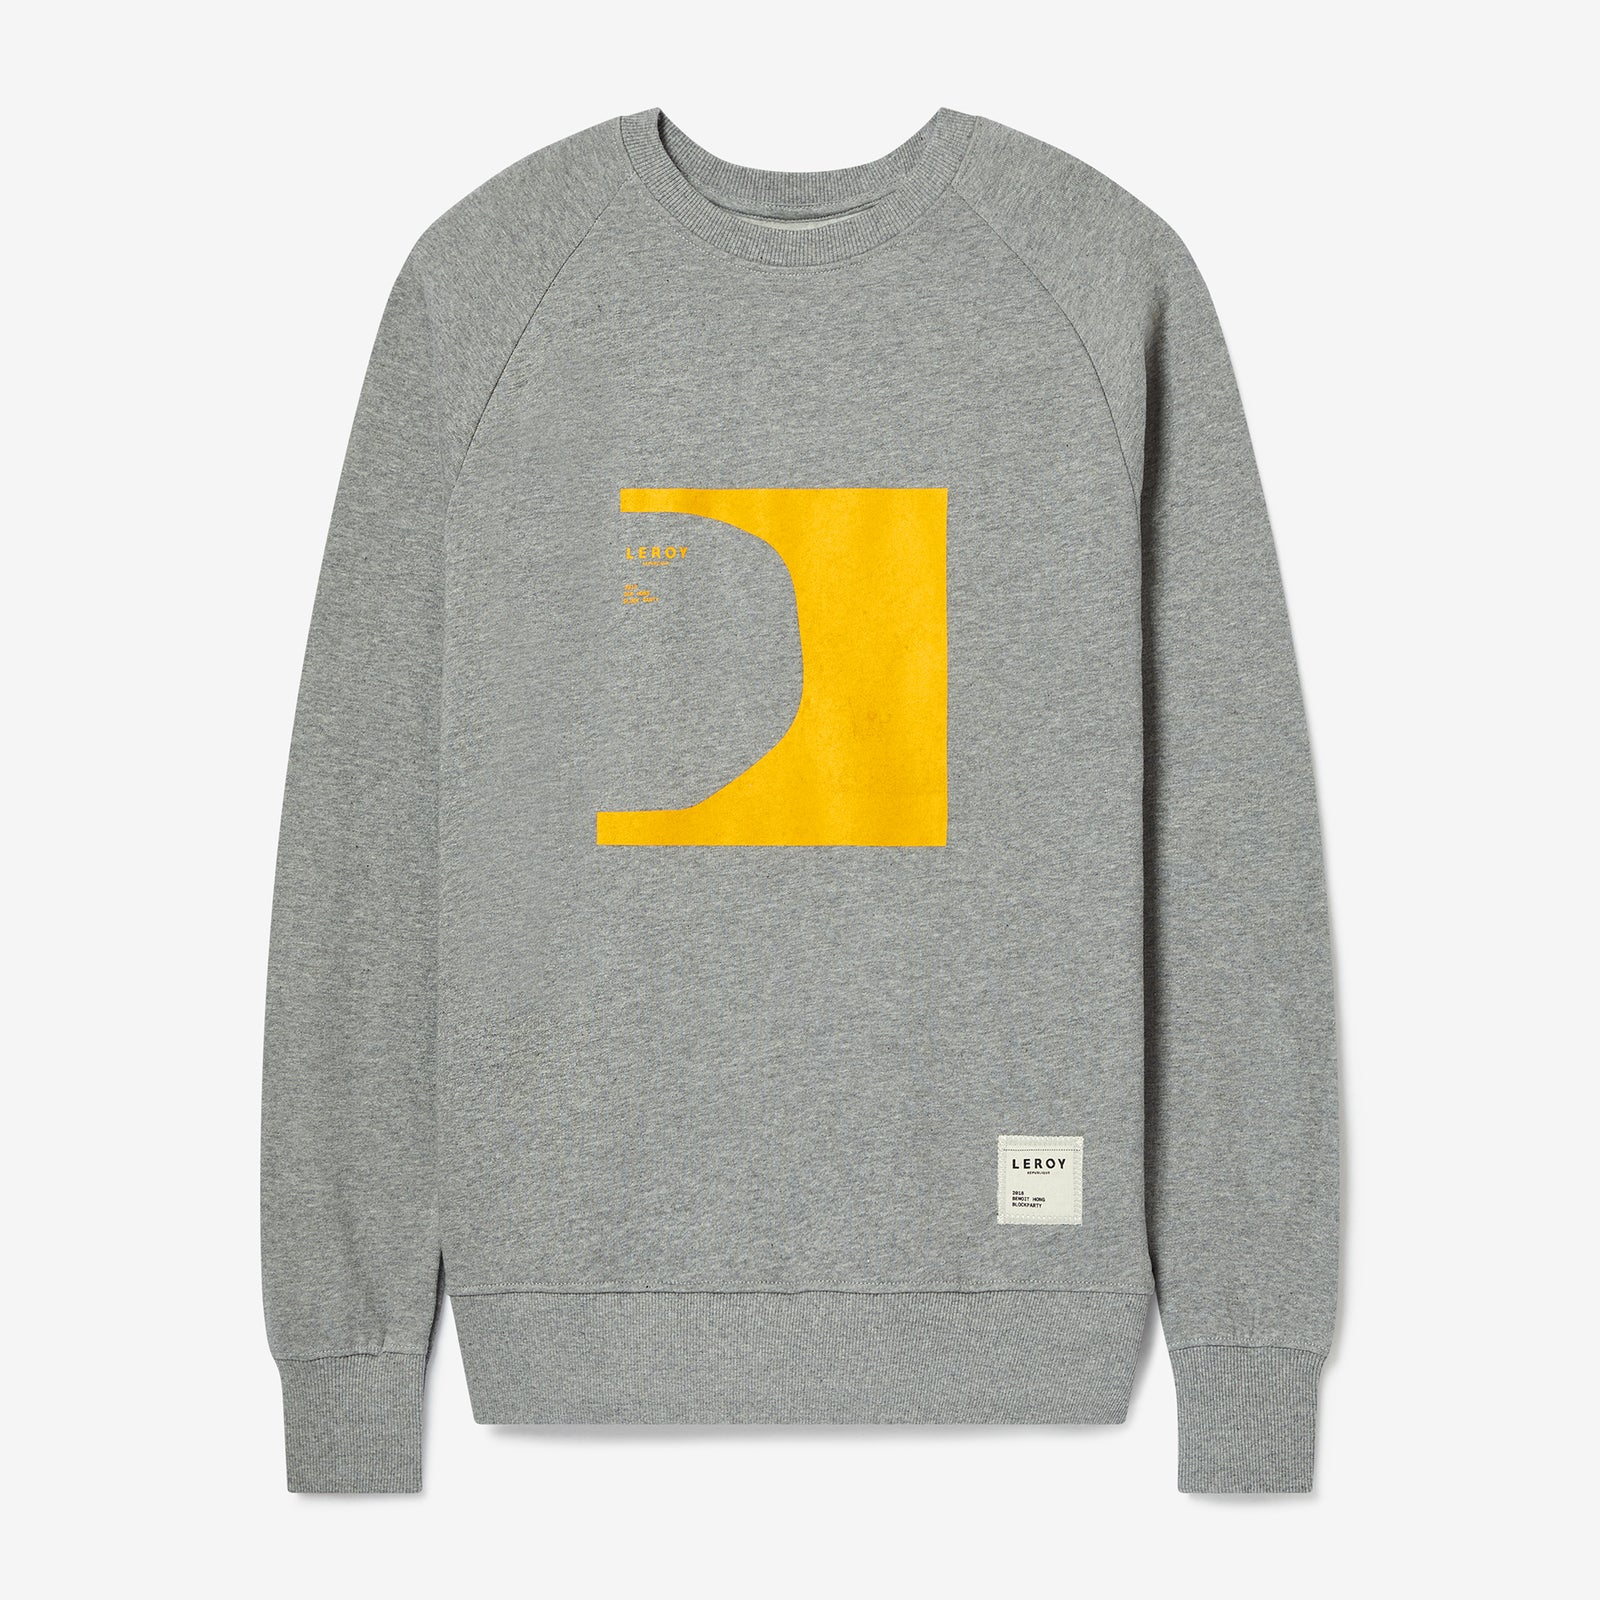 Halfpipe warm yellow crew neck